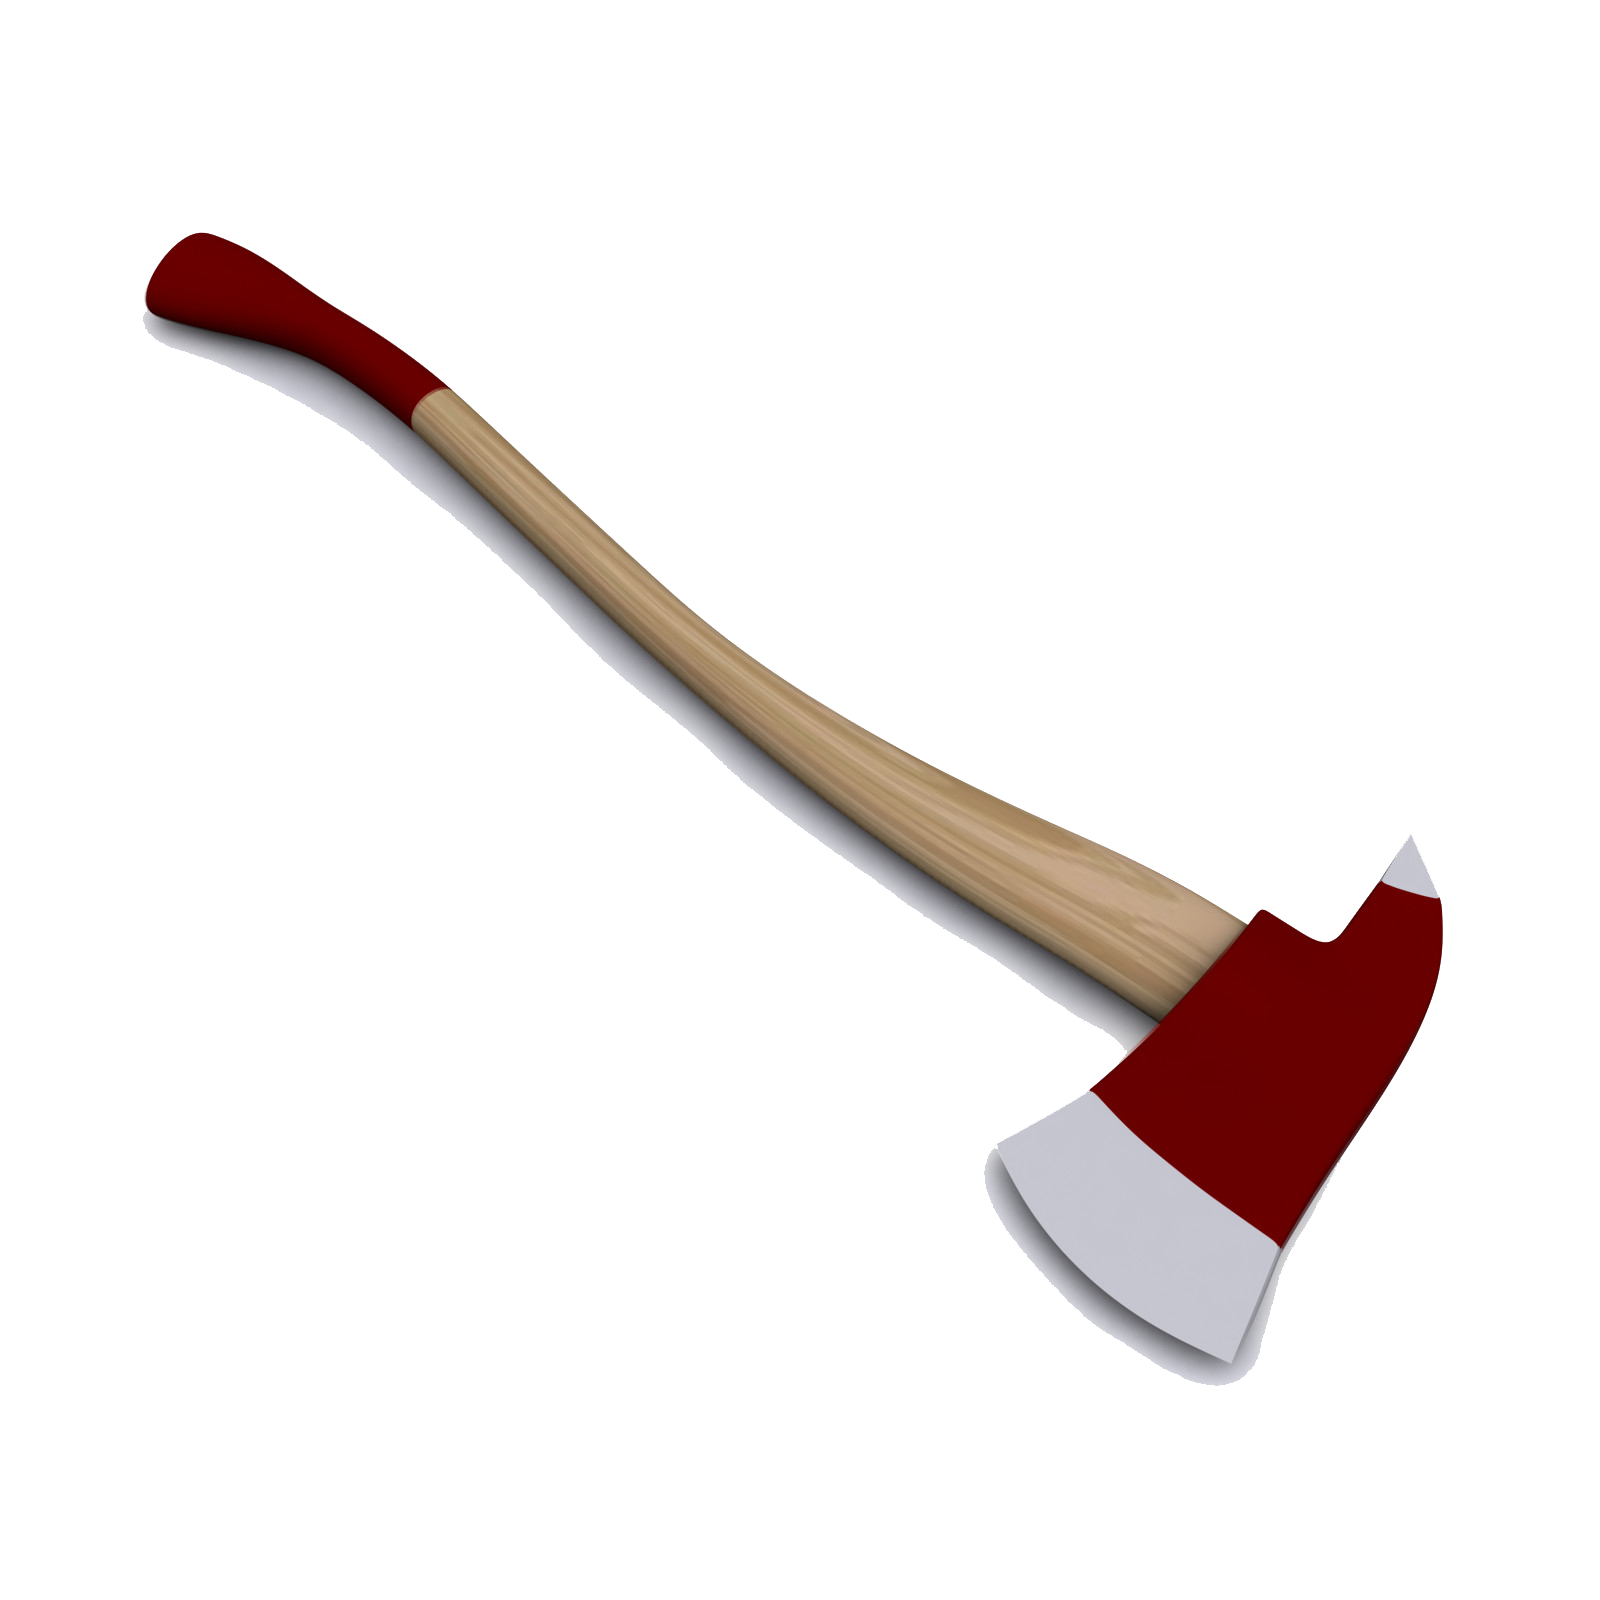 download axe download png transparent png images #31761